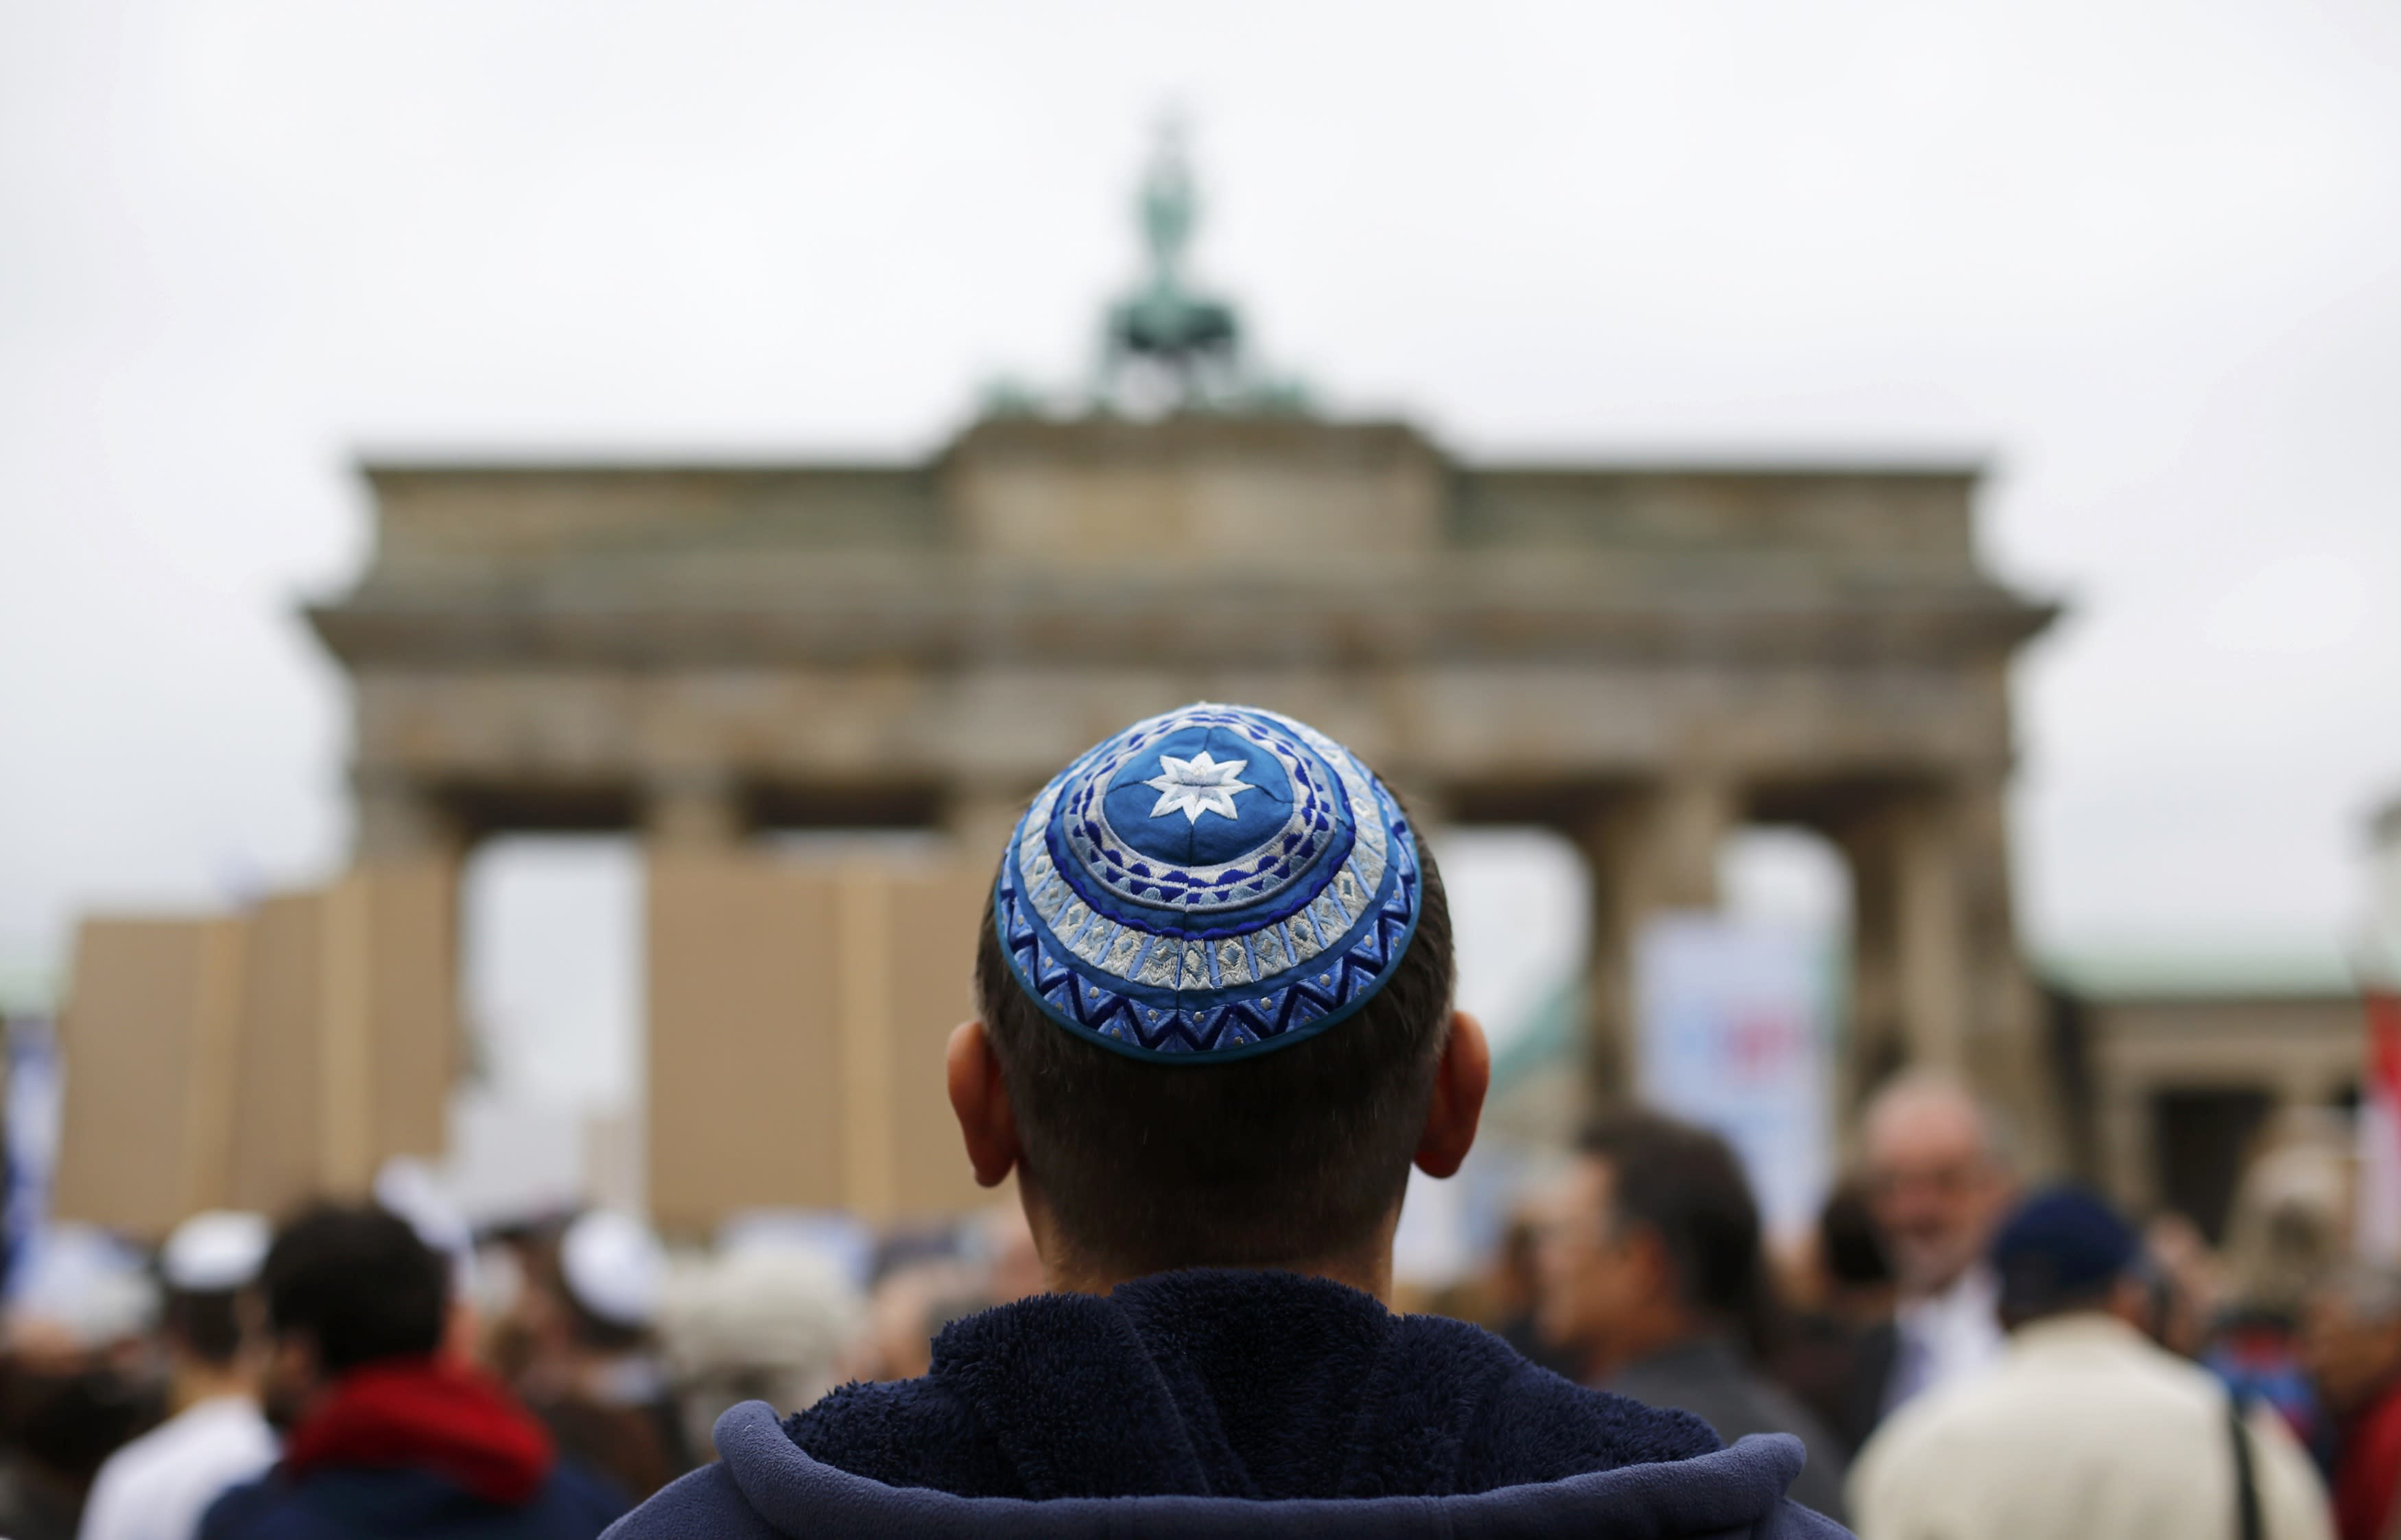 A man wearing a kippah waits for the start of an anti-Semitism demo at Berlin's Brandenburg Gate September 14, 2014. Placard reads ' Never again'. REUTERS/Thomas Peter (GERMANY - Tags: POLITICS)